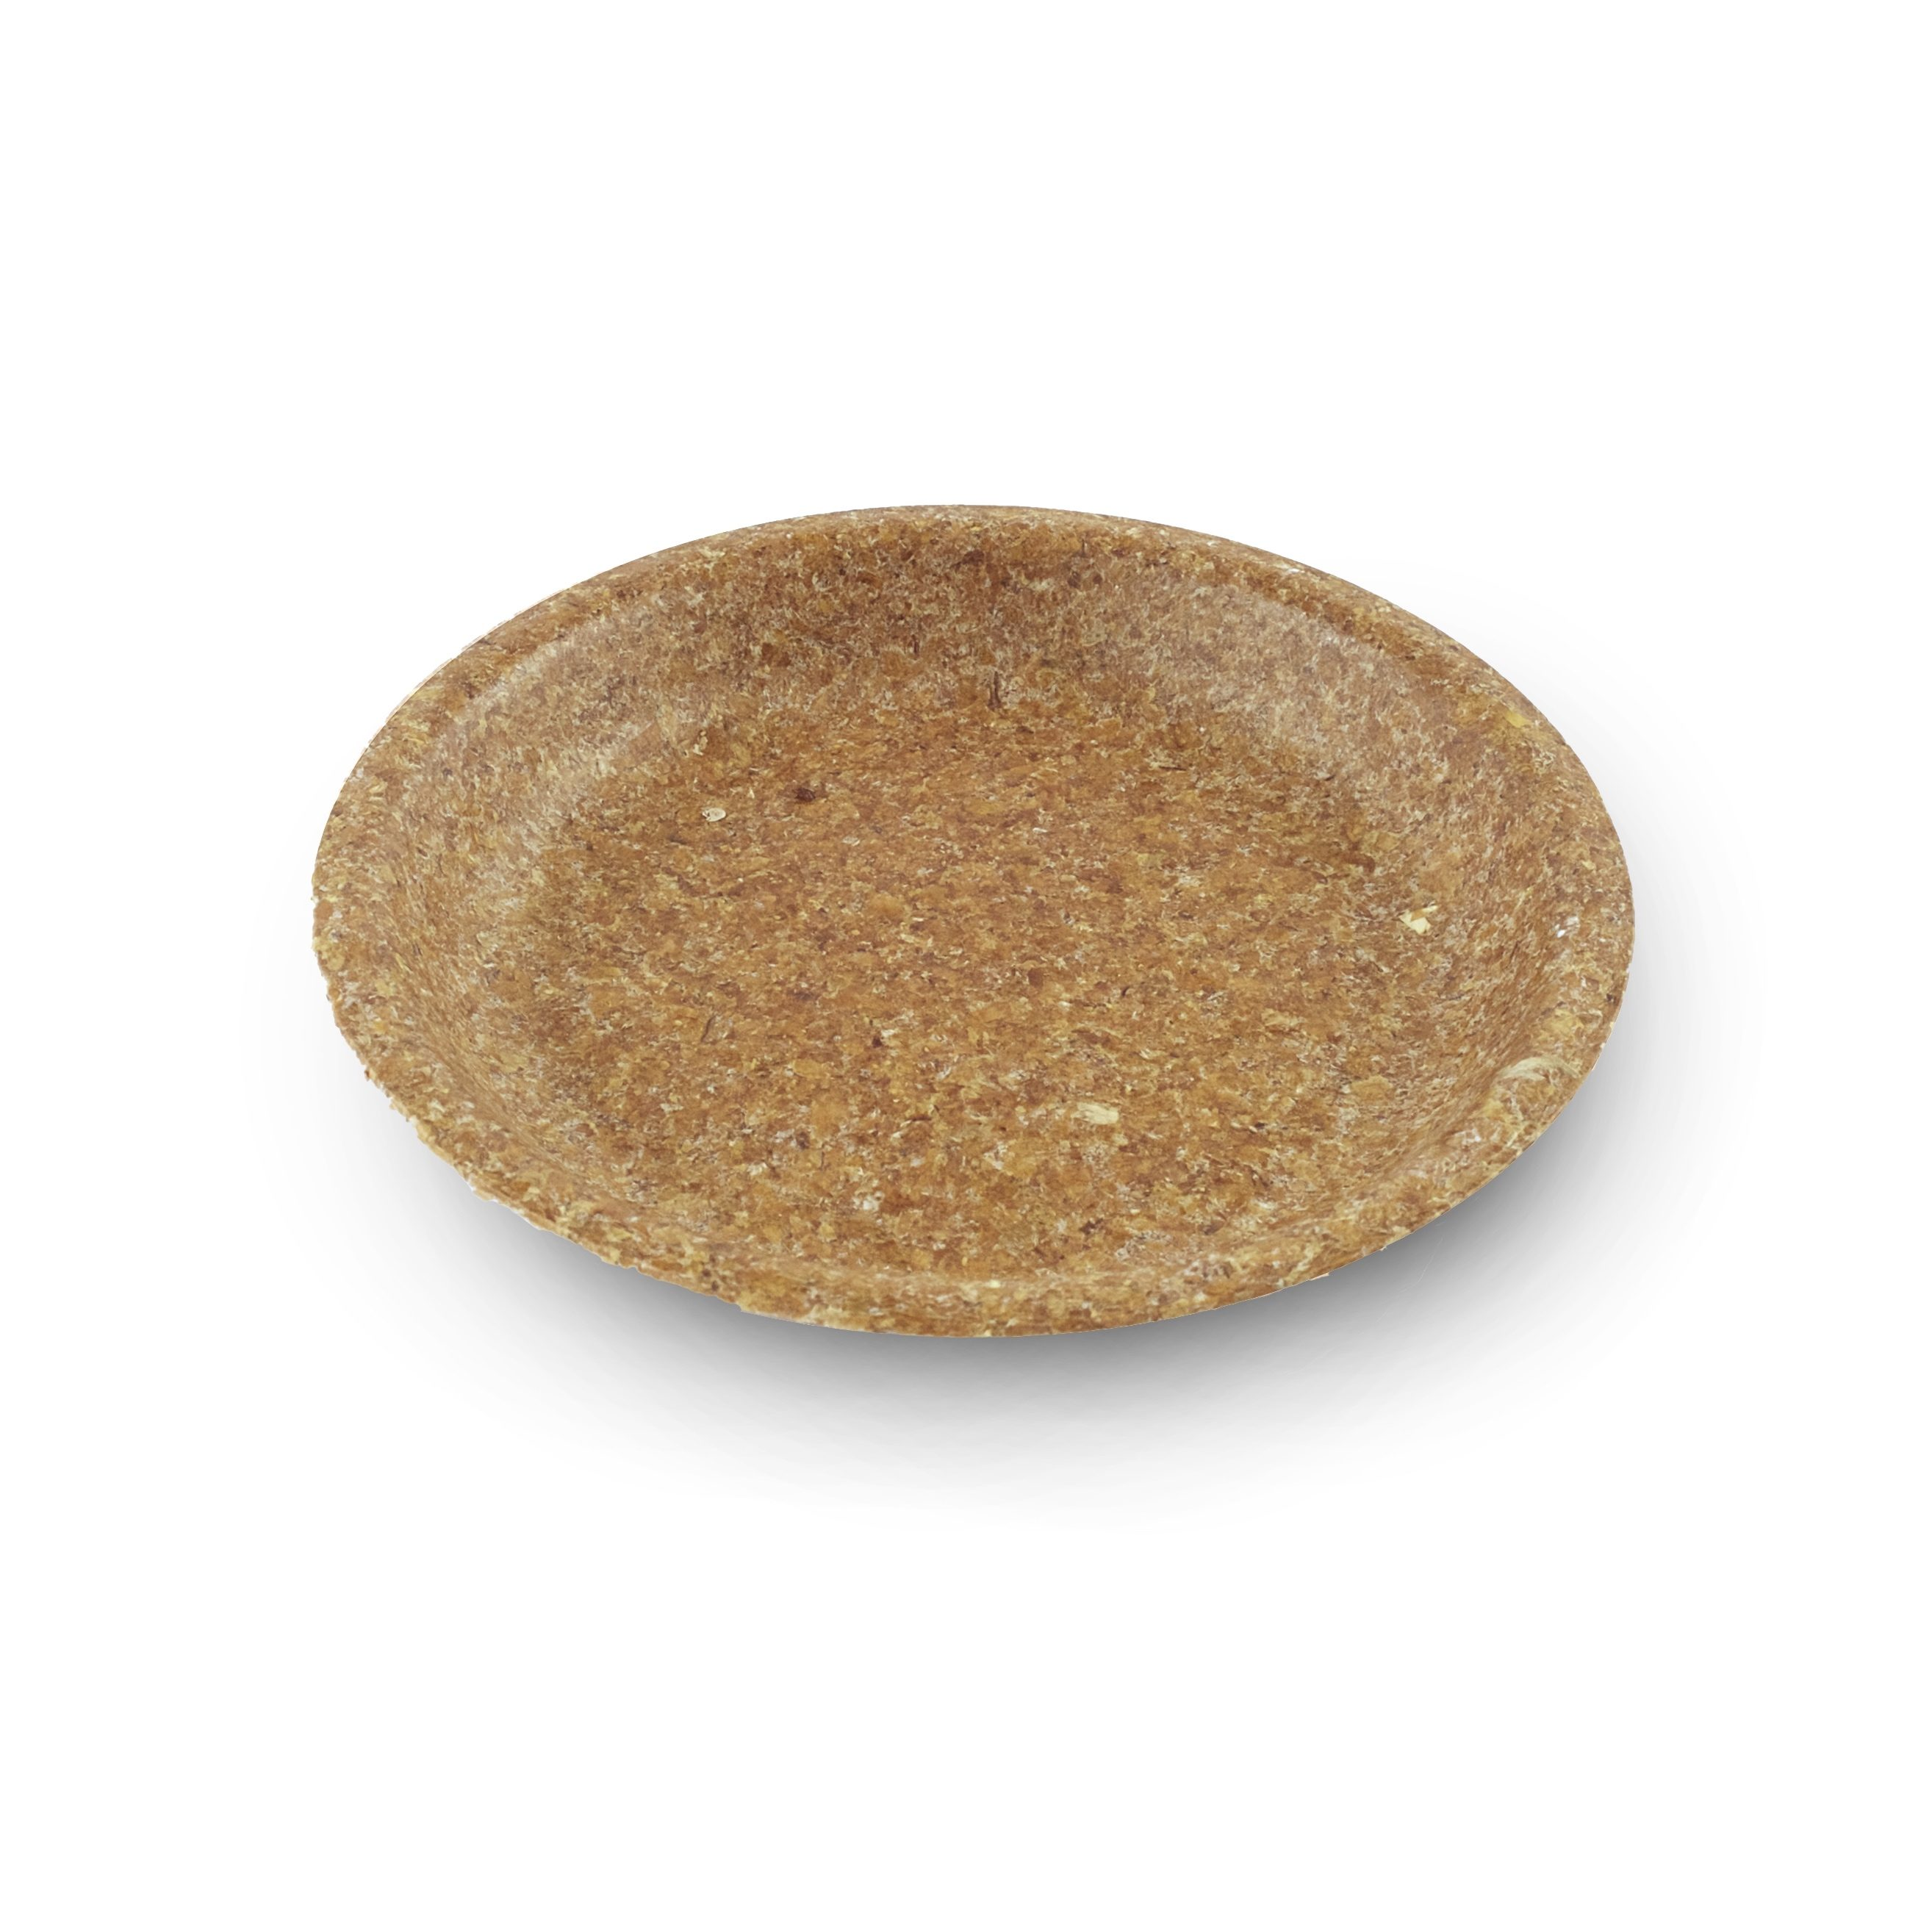 Wheat bran-made Plates the Best Choice to Replace Plastic in Restaurants | The Costa Rica News  sc 1 st  The Costa Rica News. & Wheat bran-made Plates the Best Choice to Replace Plastic in ...